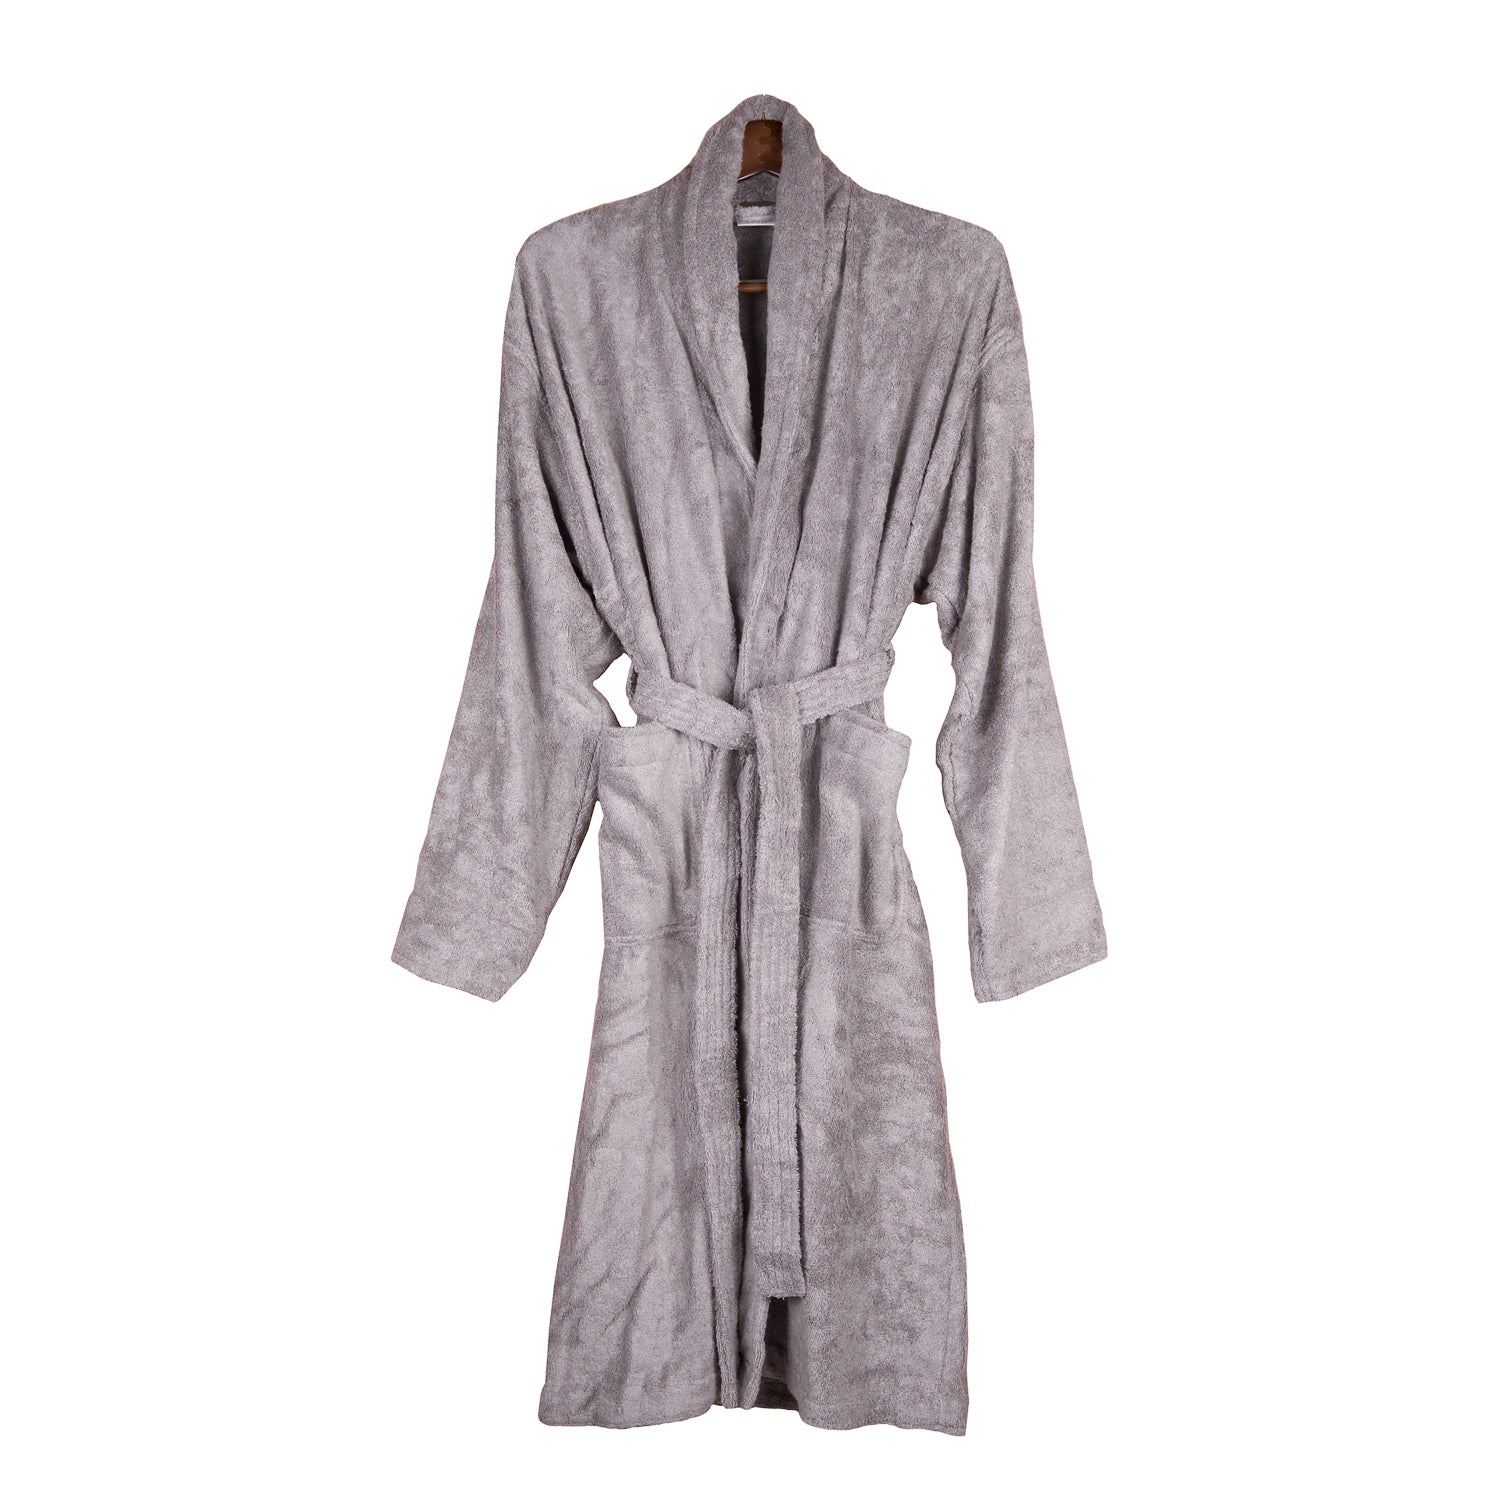 Organic Combed Cotton Spa Bath Robe